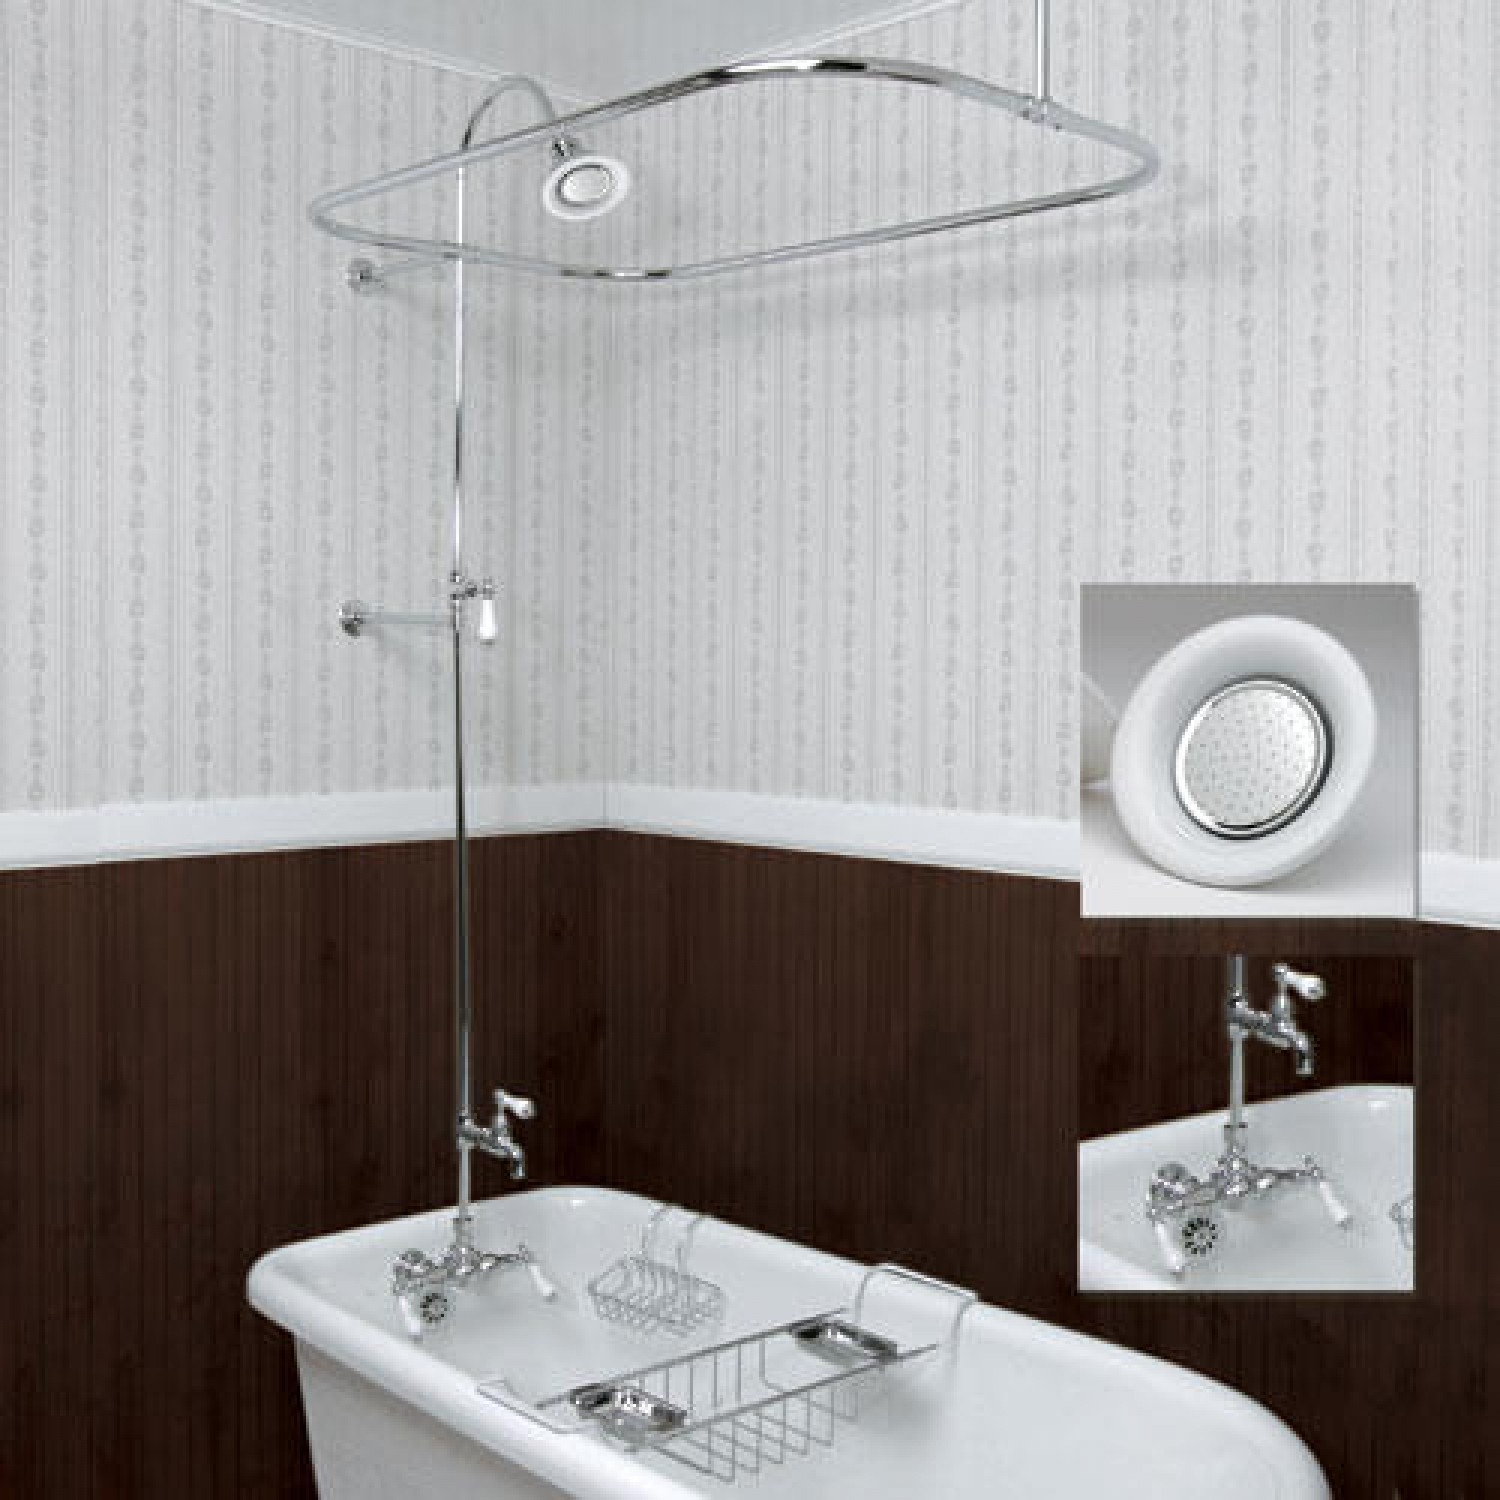 Clawfoot Tub Shower Enclosure With Faucet Showerhead And